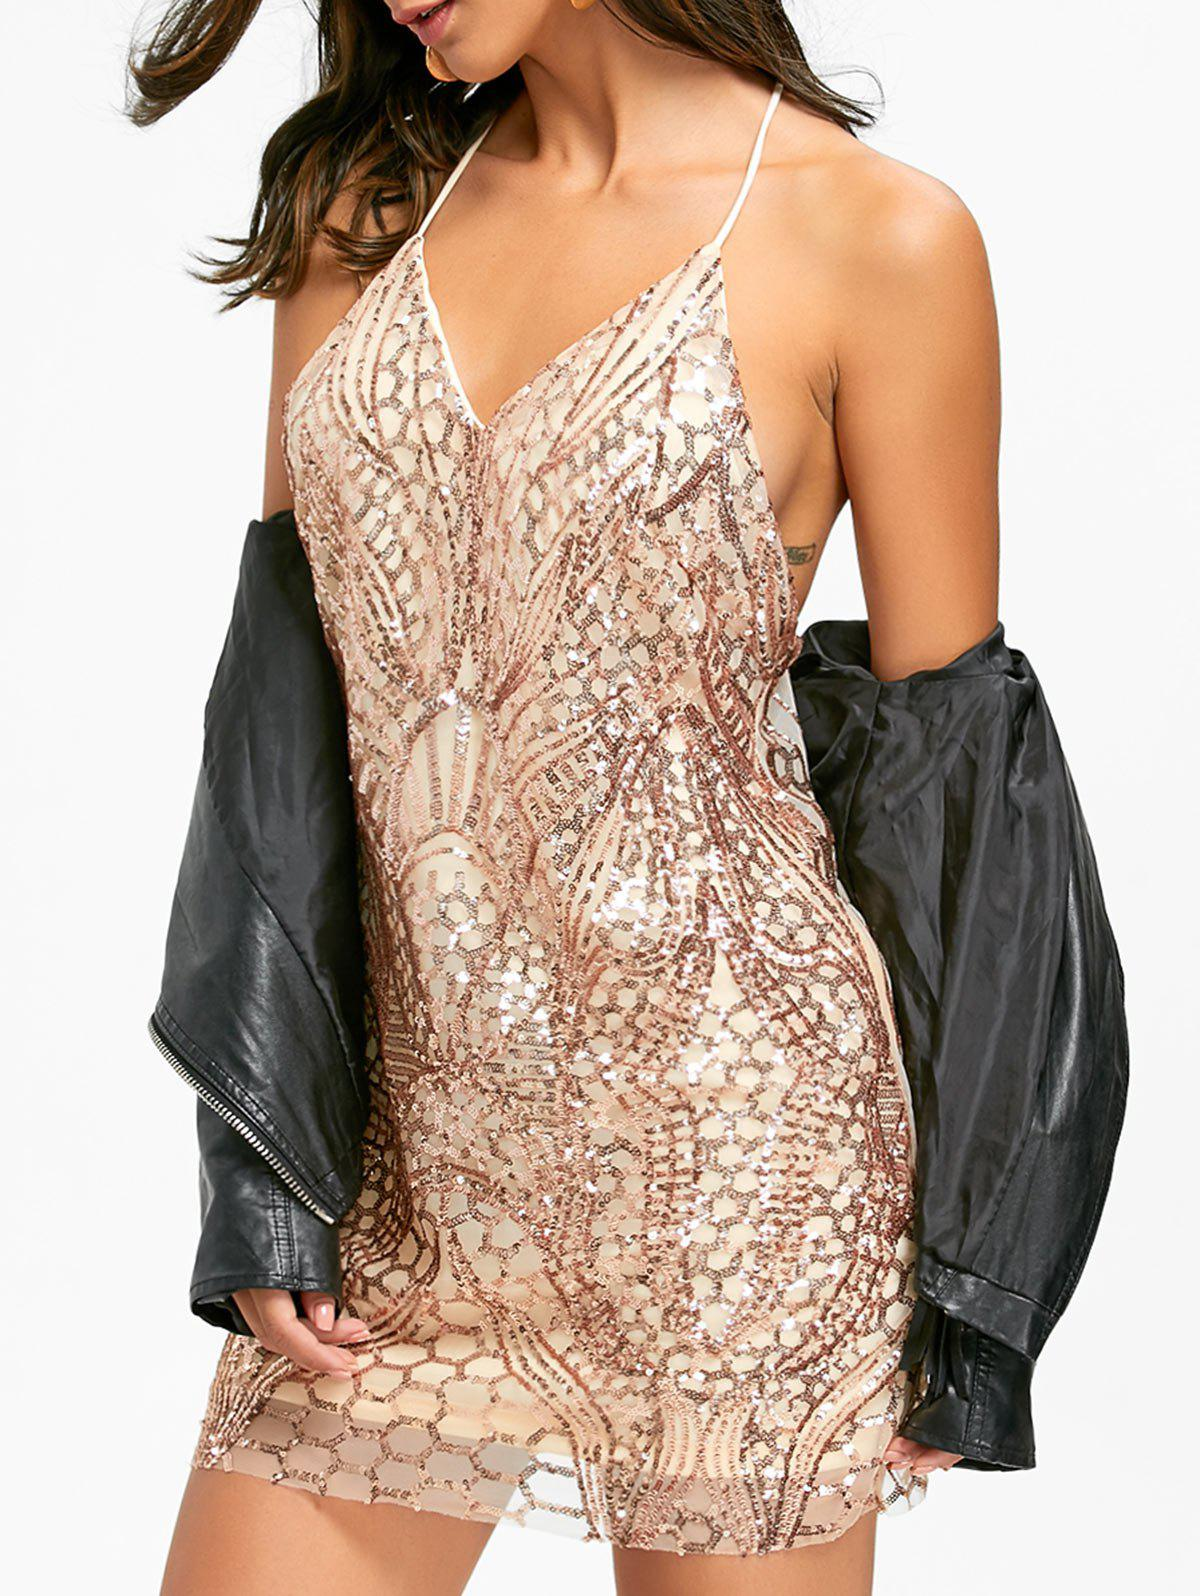 Night Out Sequins Backless Slip Dress - Or XL